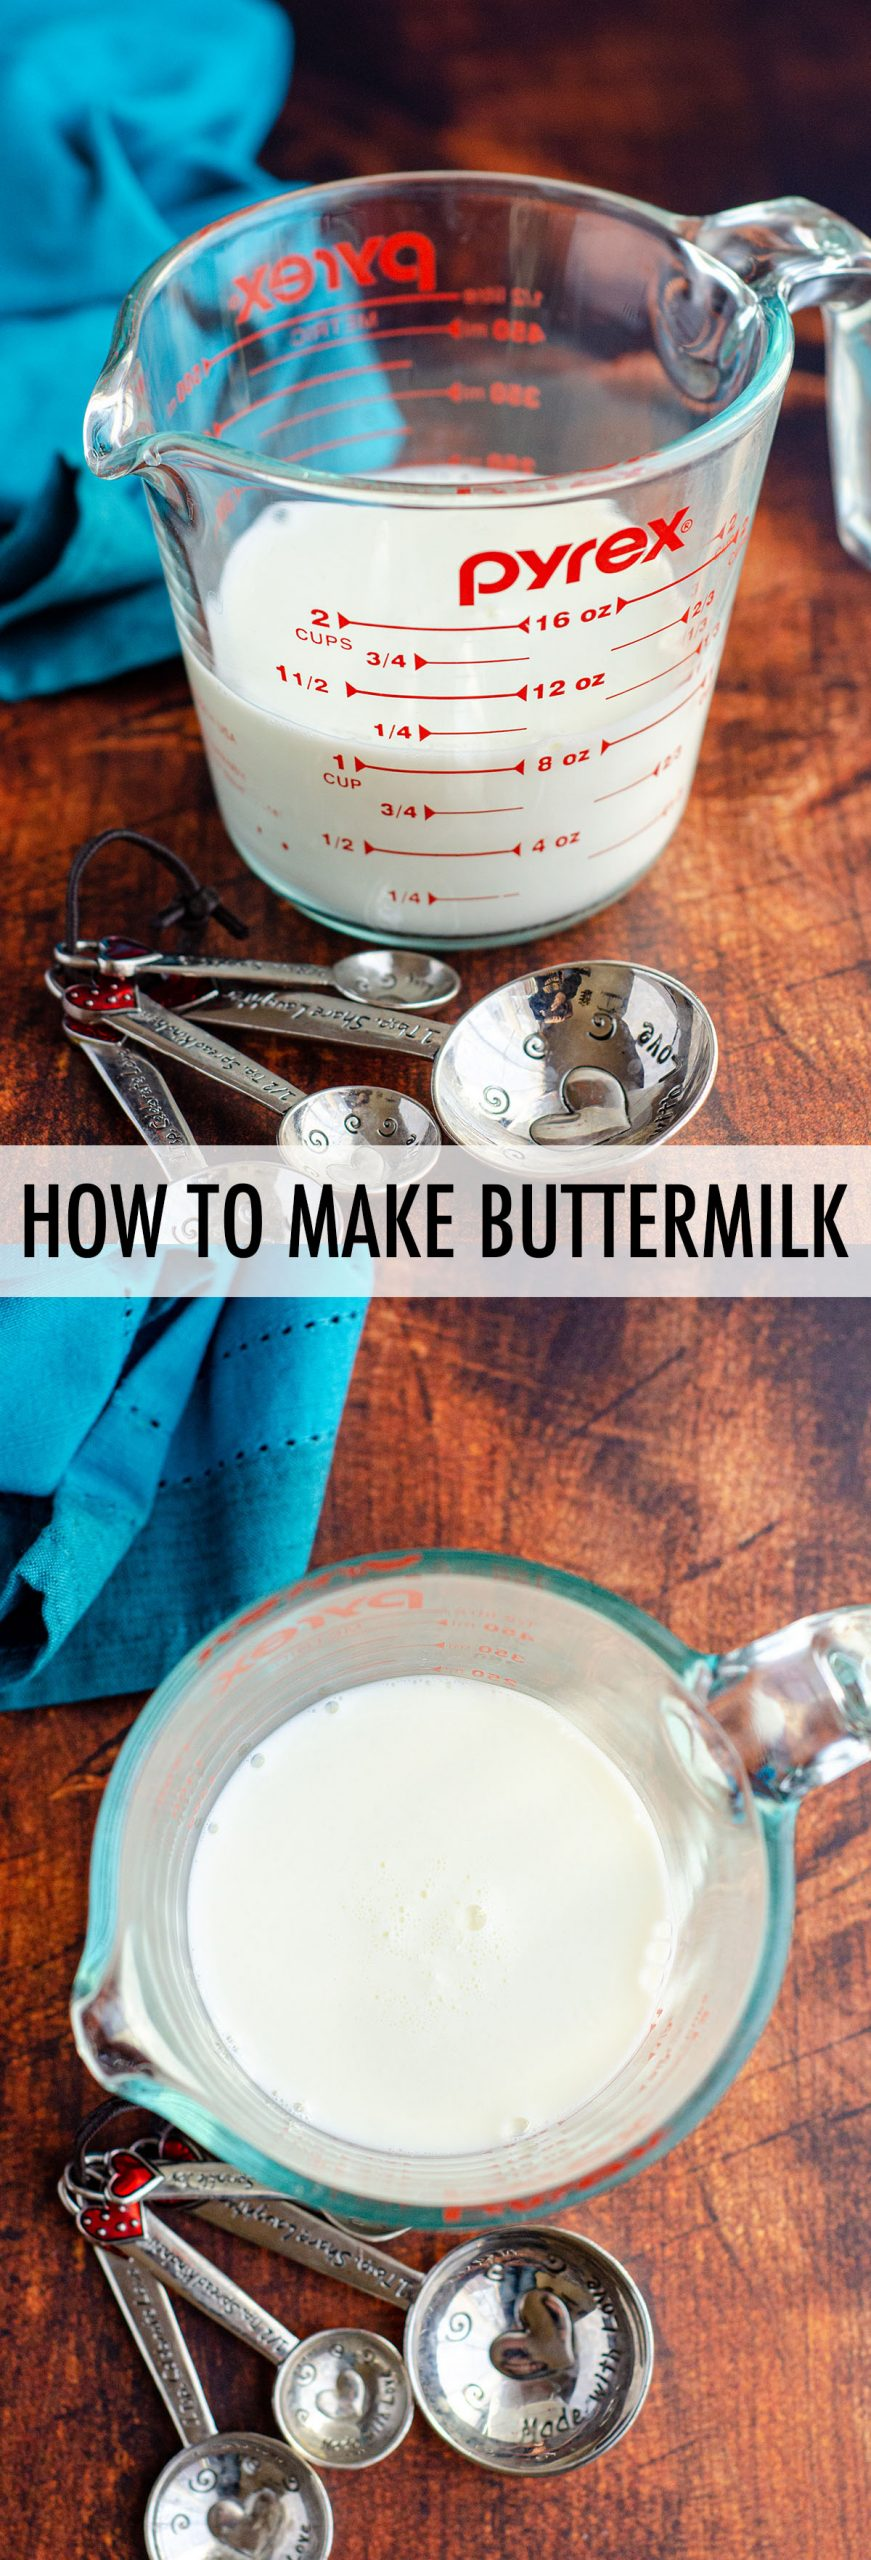 Learn how to make buttermilk in your own kitchen-- you only need 2 ingredients!